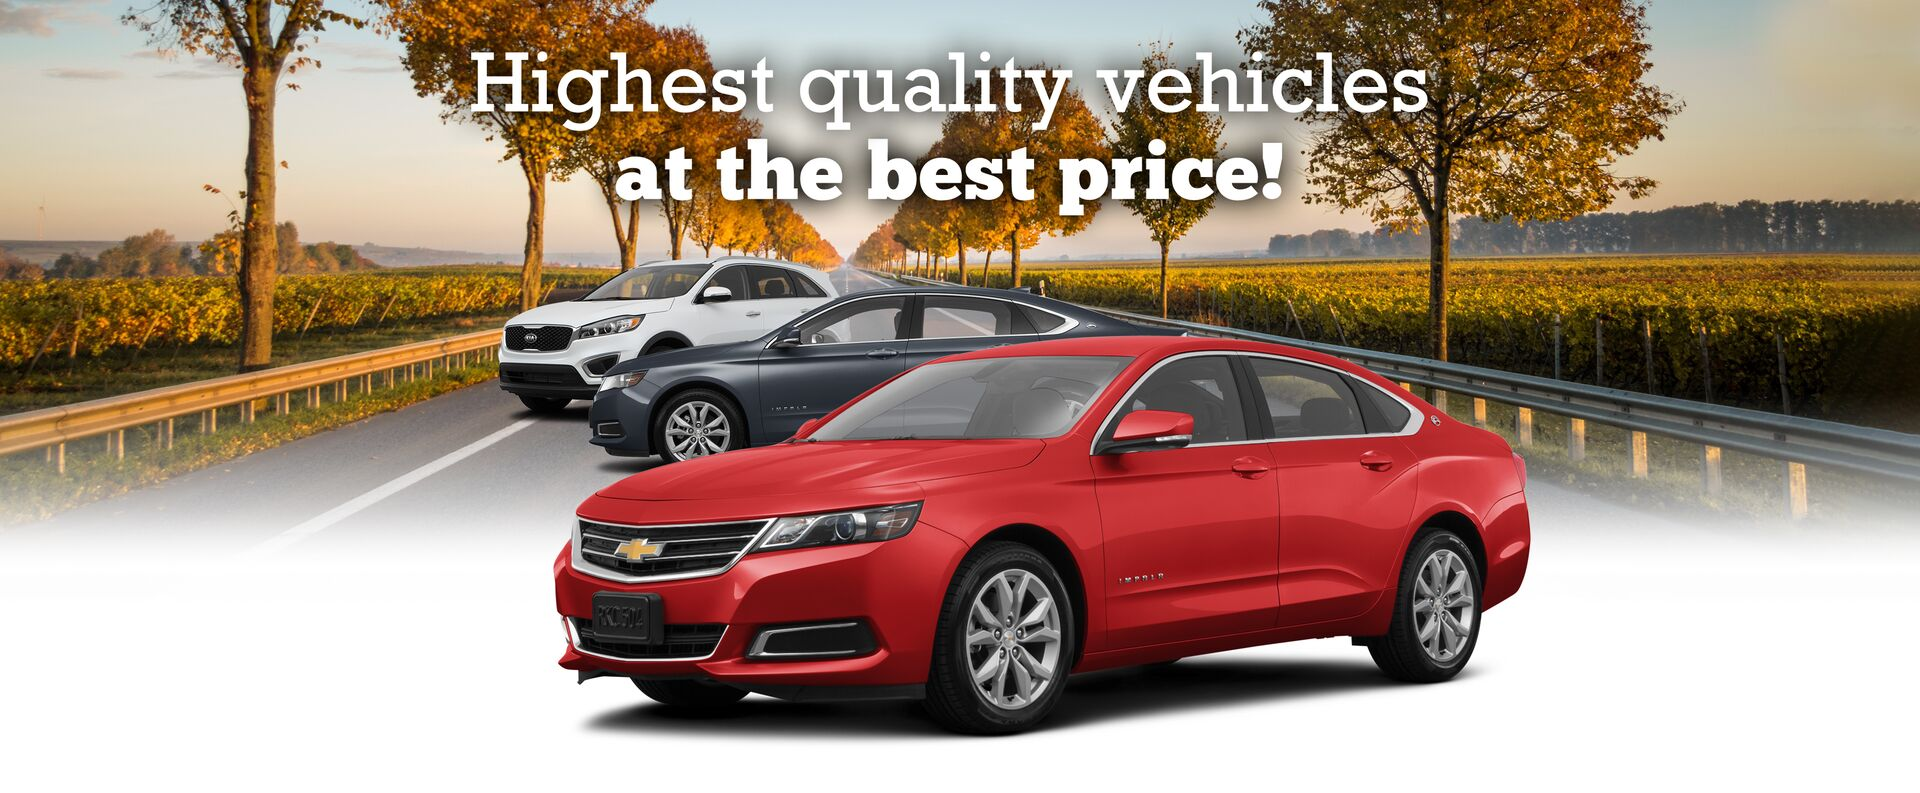 Used Car Dealer In Dothan Al Used Cars And Trucks For Sale Near